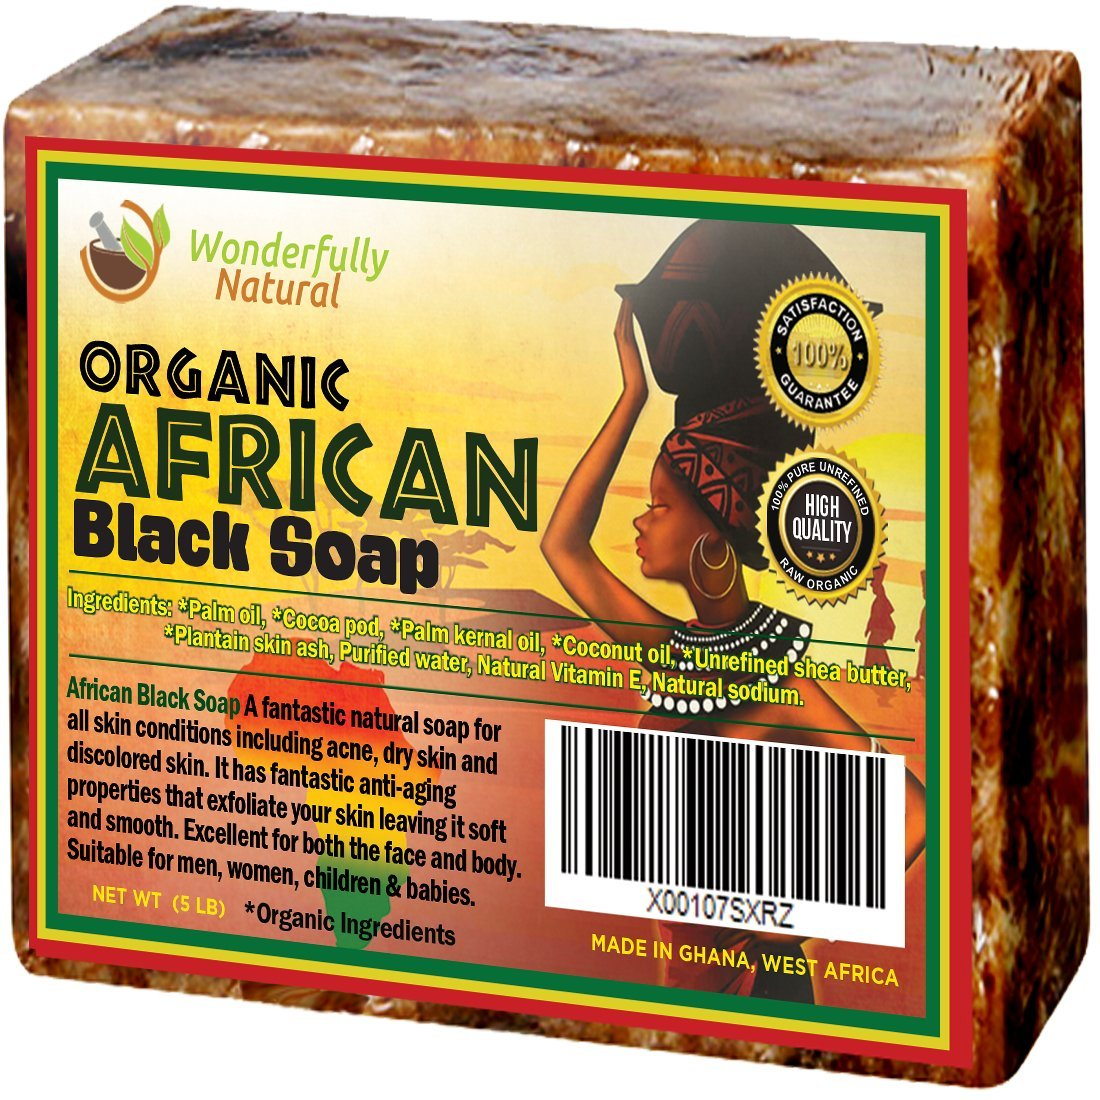 Organic African Black Soap - 5 Pound Best for Acne Treatment, Eczema, Dry Skin, Psoriasis, Scars, Dermatitis, White Heads Pimples, Anti-fungal Face & Body Wash, Raw Handcrafted Beauty Scrub Bar ...